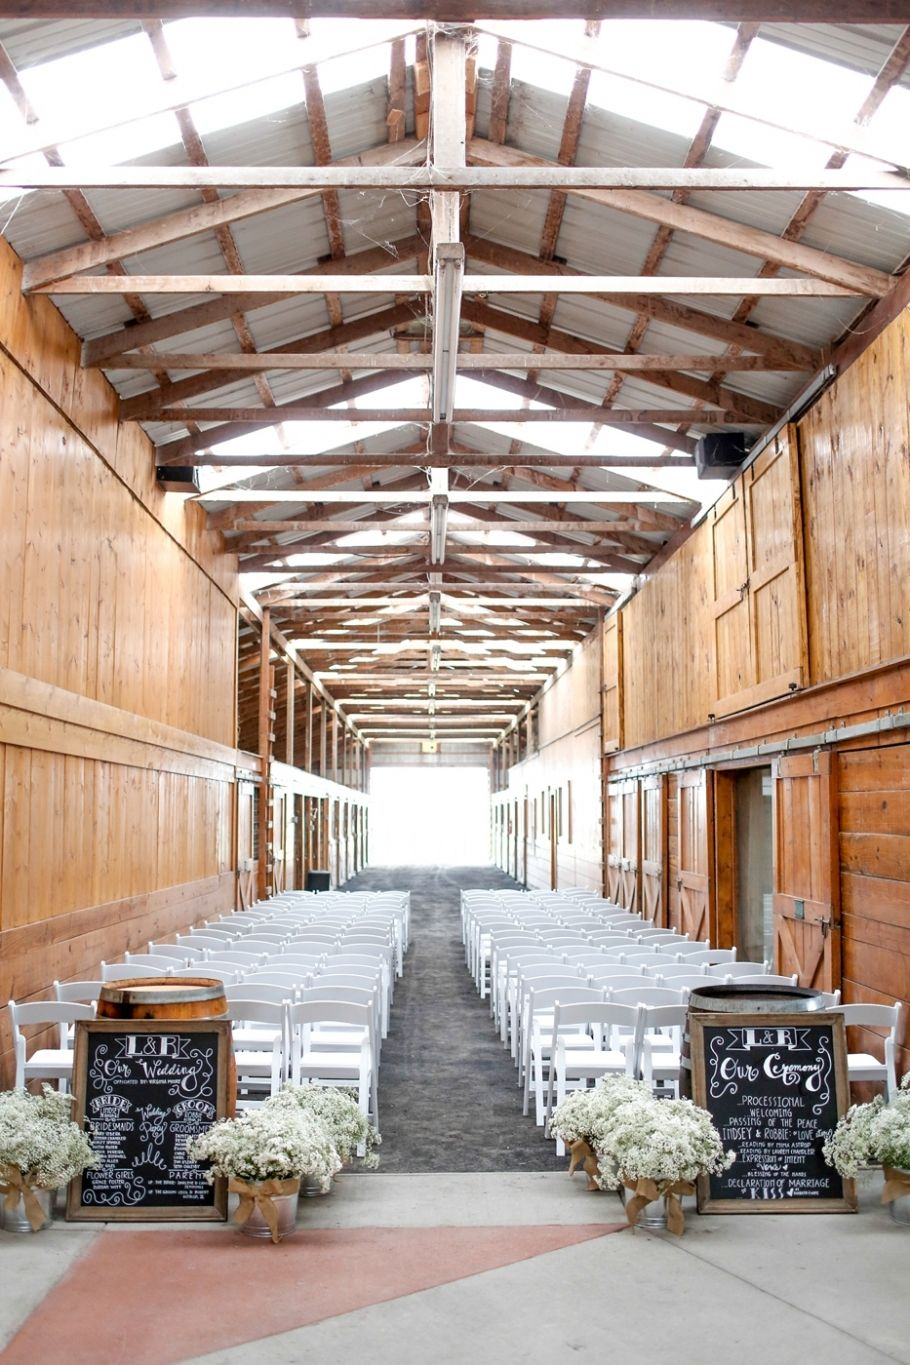 25+ Stable craft brewing at hermitage hill farm ideas in 2021